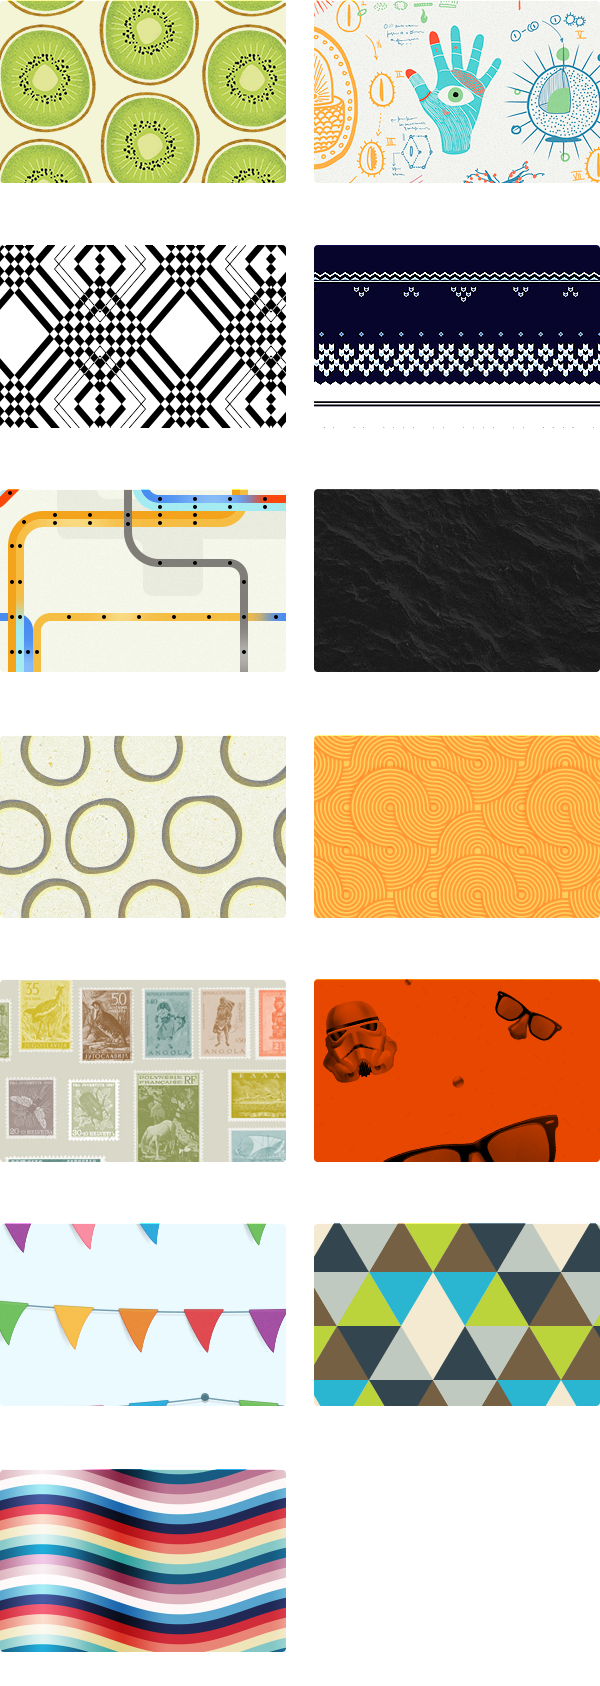 Patterns pattern tile tileable free freebie Collaborative library